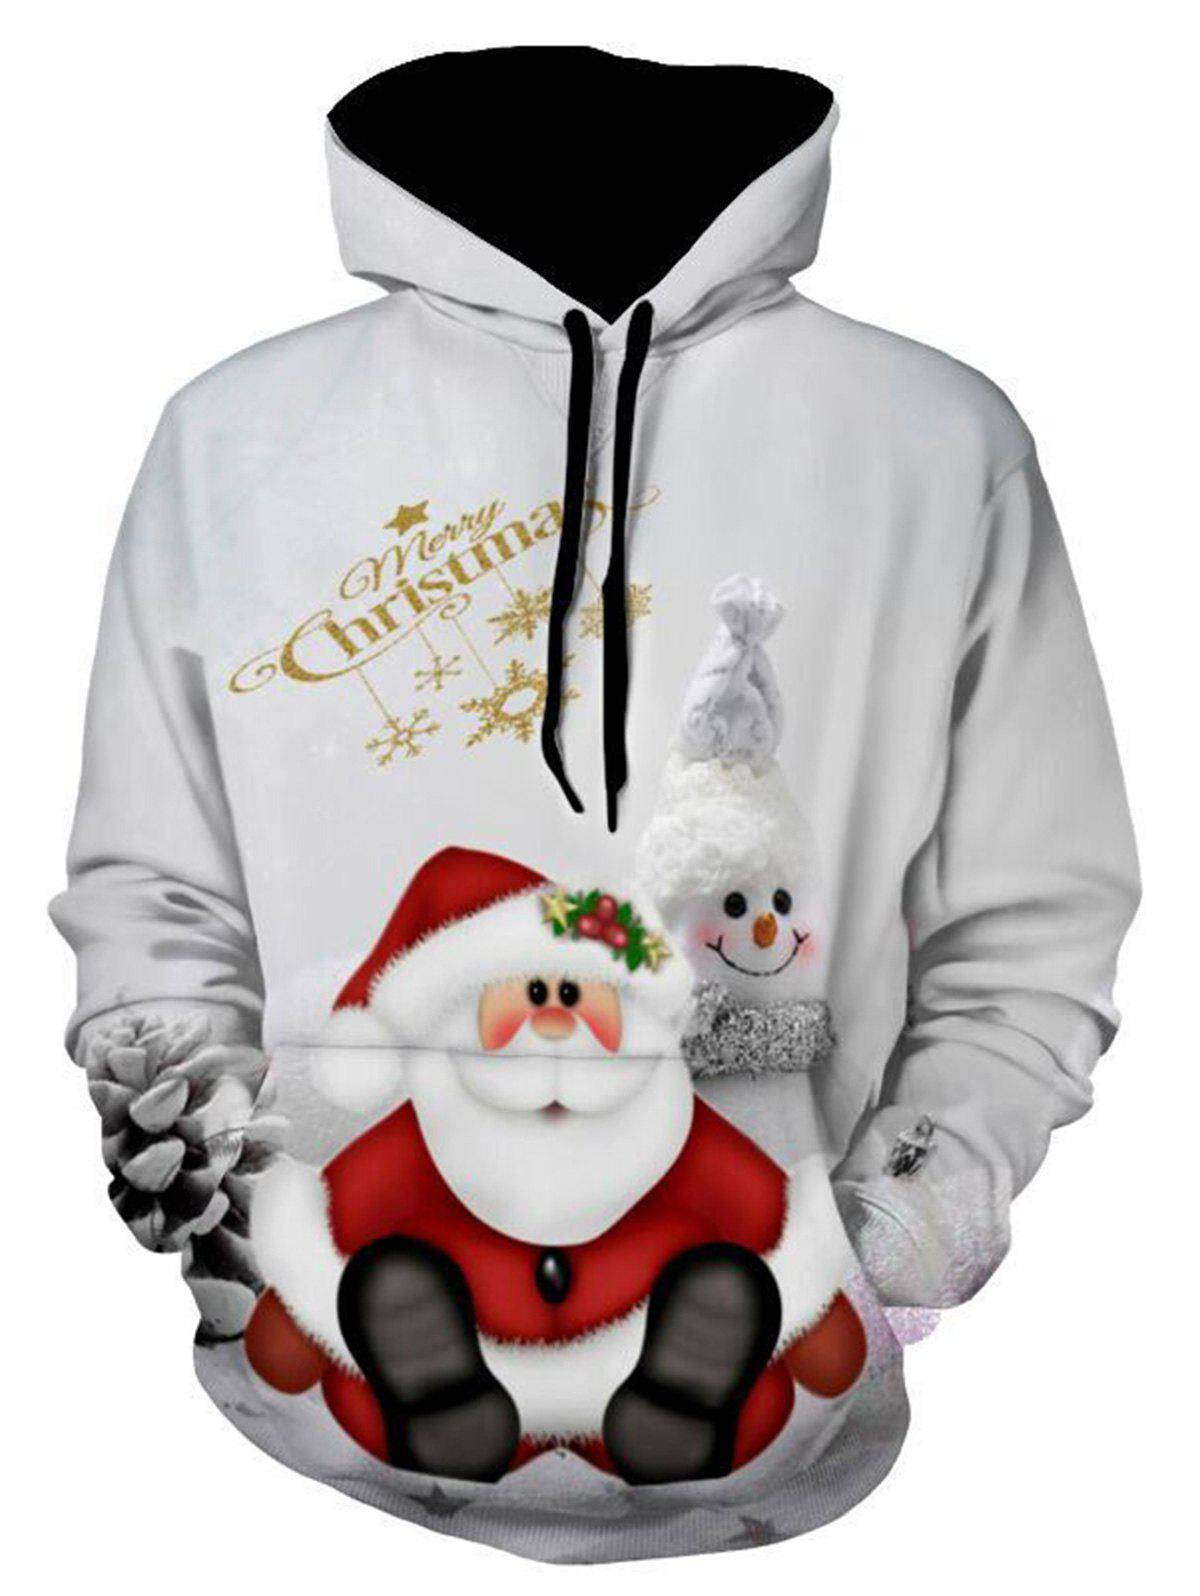 Christmas Snowman Print Pullover HoodieMEN<br><br>Size: L; Color: GRAY; Material: Polyester,Spandex; Clothes Type: Hoodie; Shirt Length: Regular; Sleeve Length: Full; Style: Fashion; Patterns: 3D,Animal,Print; Thickness: Regular; Occasion: Casual ,Daily Use,Going Out; Weight: 0.5400kg; Package Contents: 1 x Hoodie;